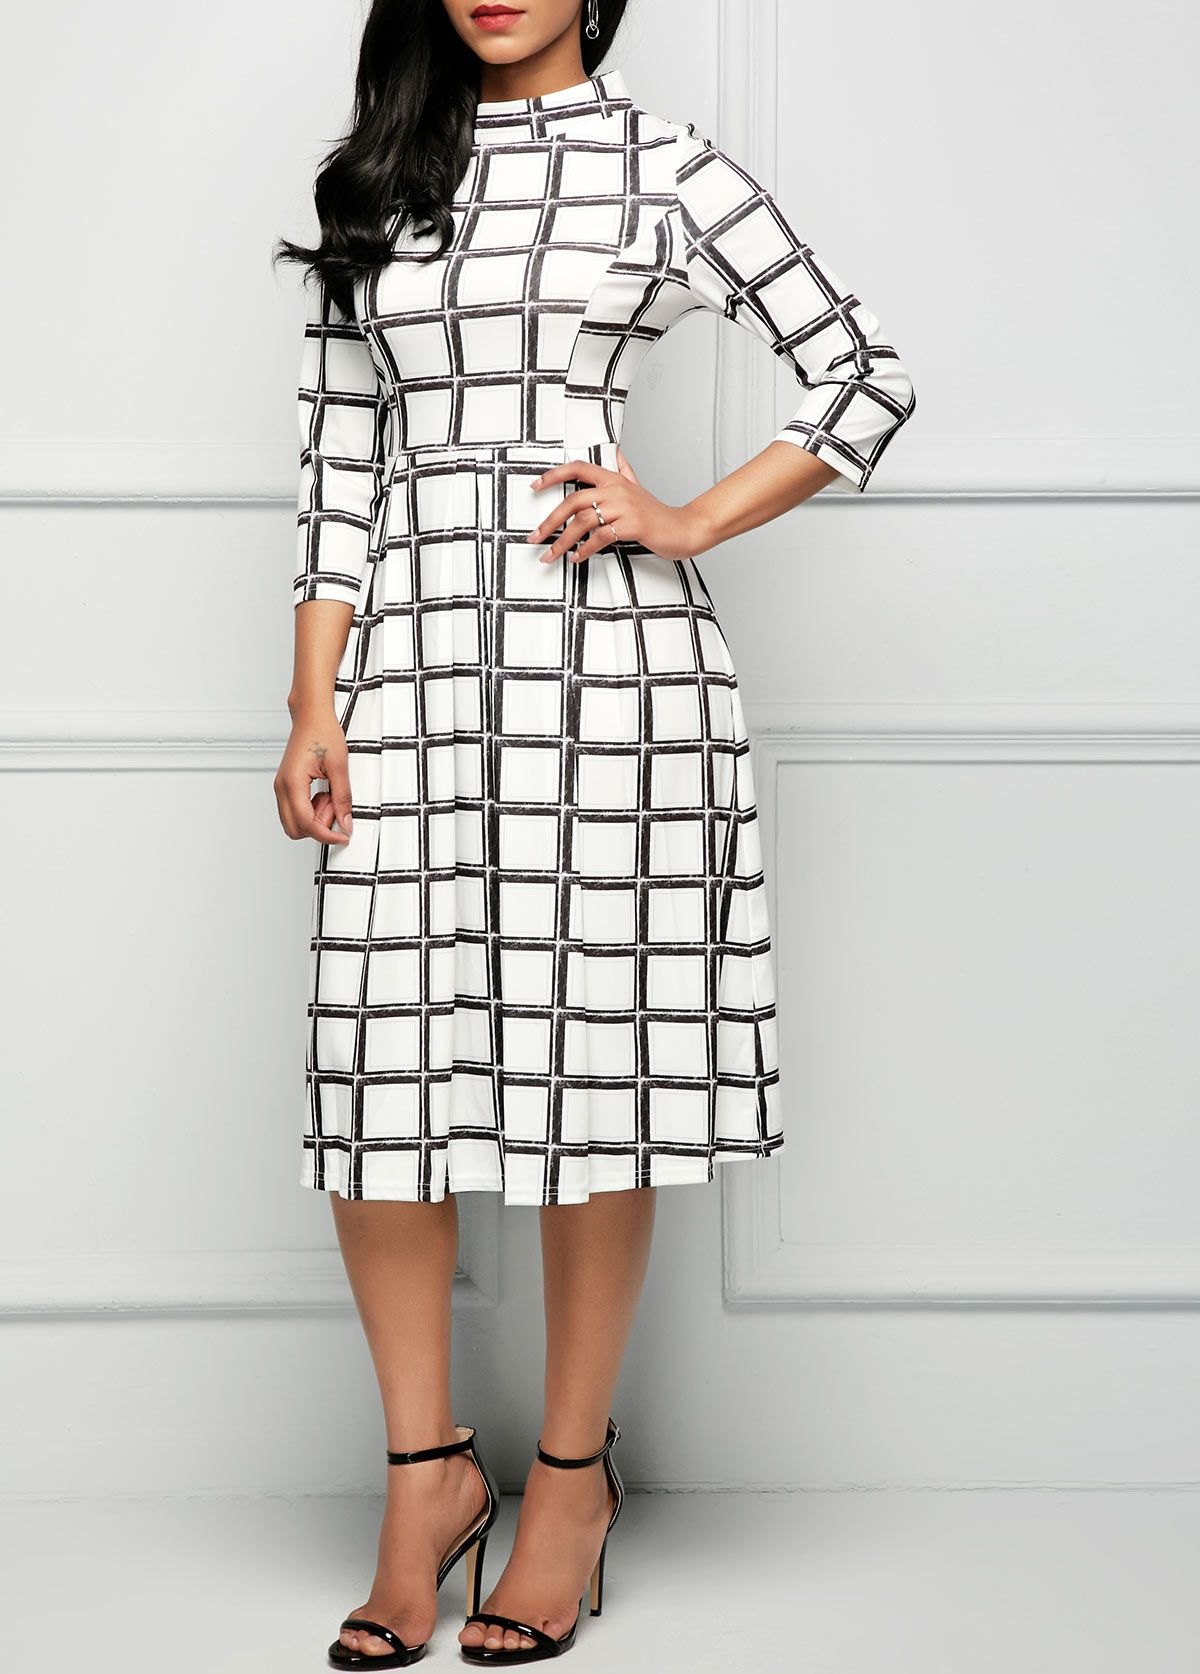 1f85b91f864b High Waist Printed Three Quarter Sleeve Dress | Rosewe.com - USD $32.19